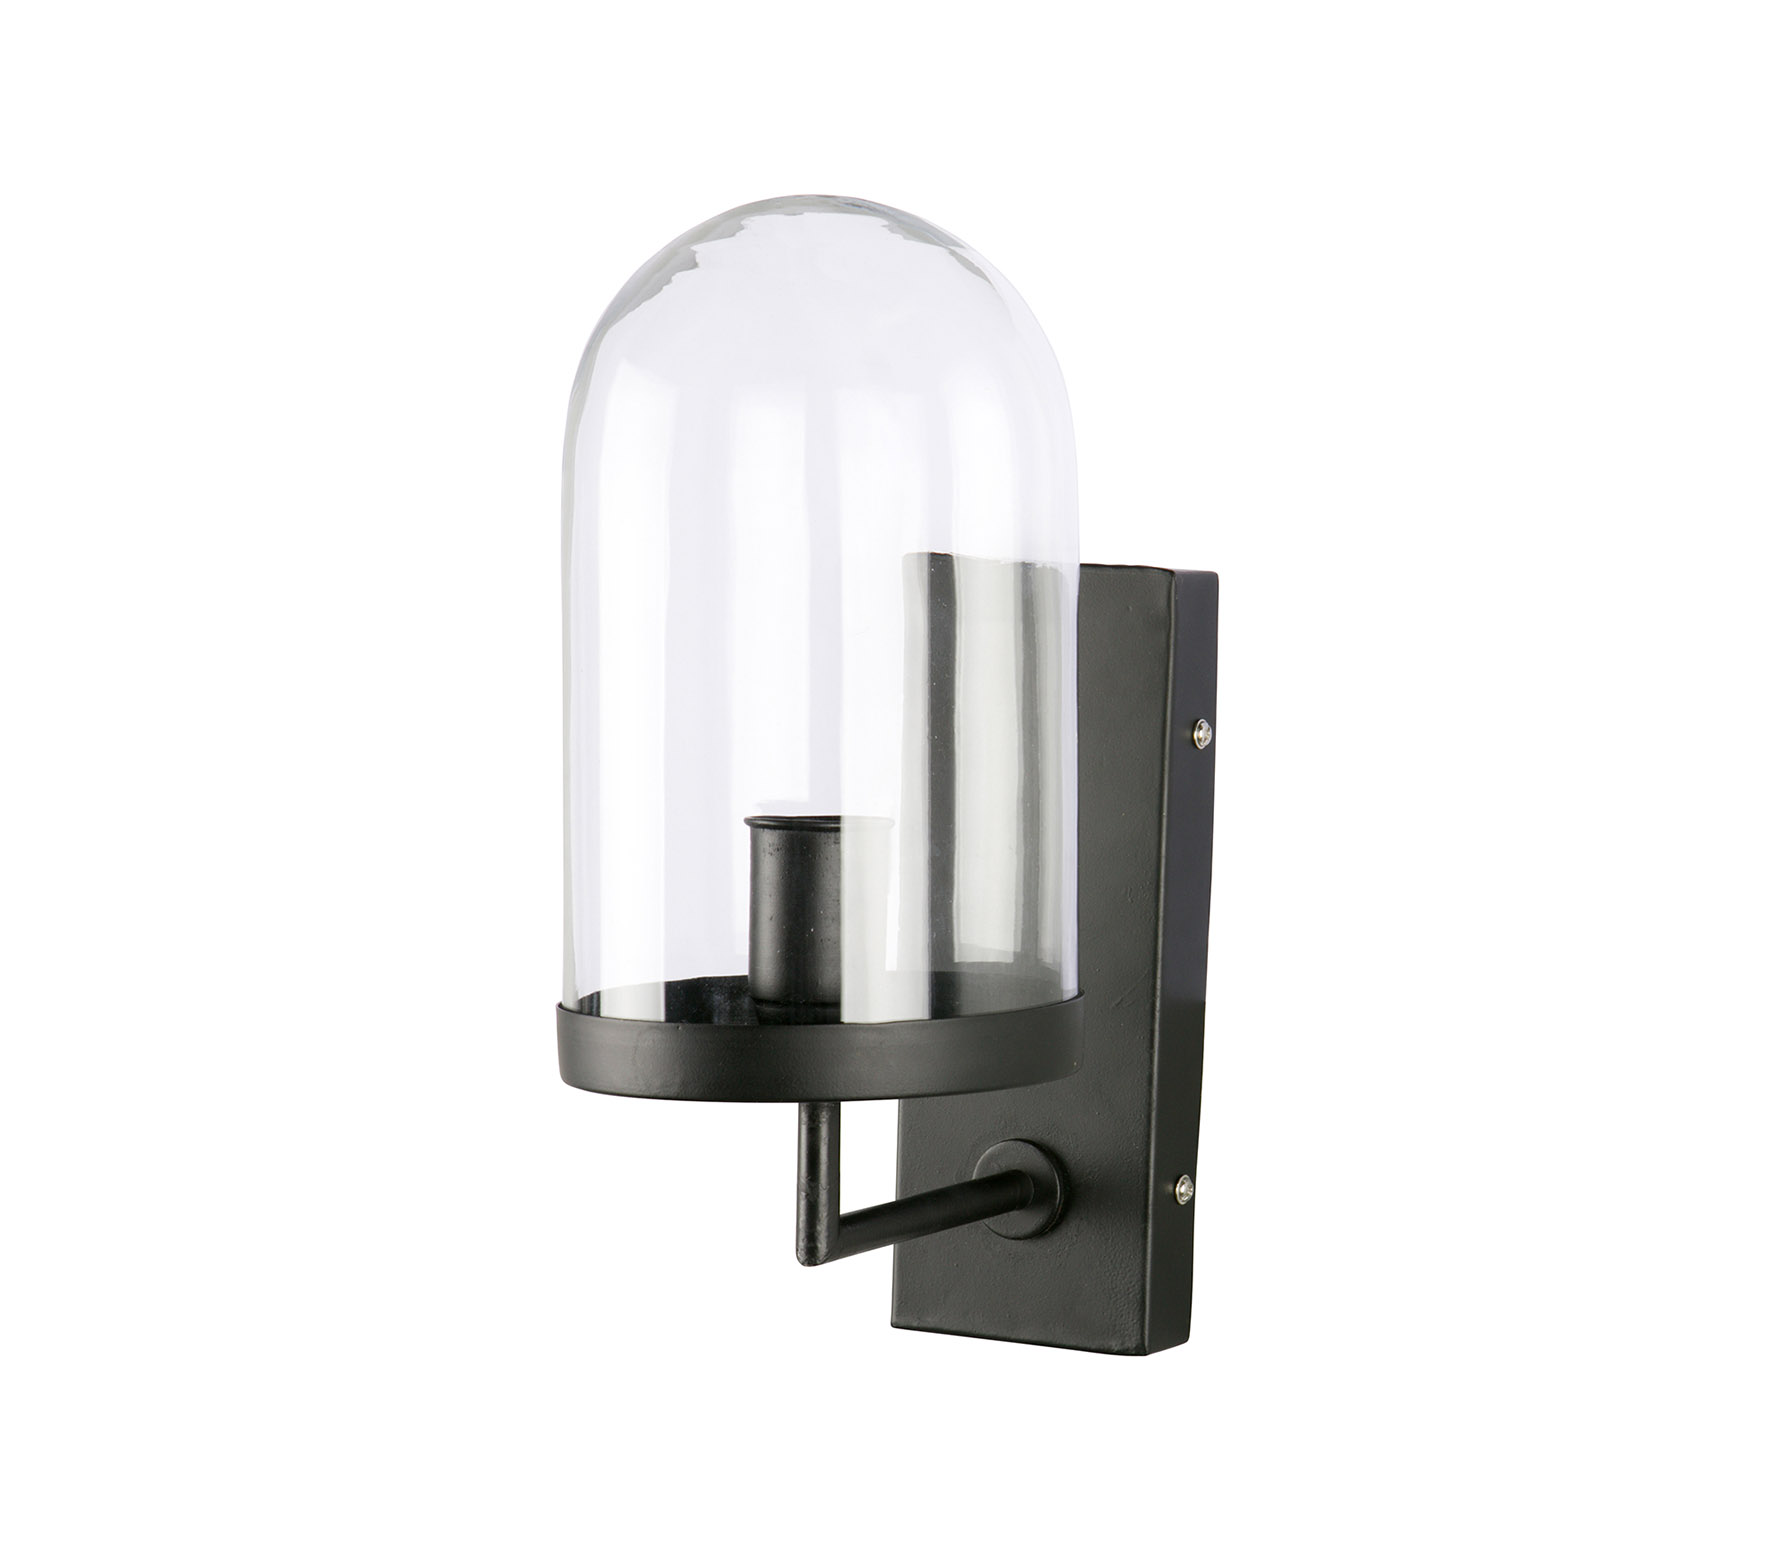 BePureHome Cover up wandlamp zwart VS 01